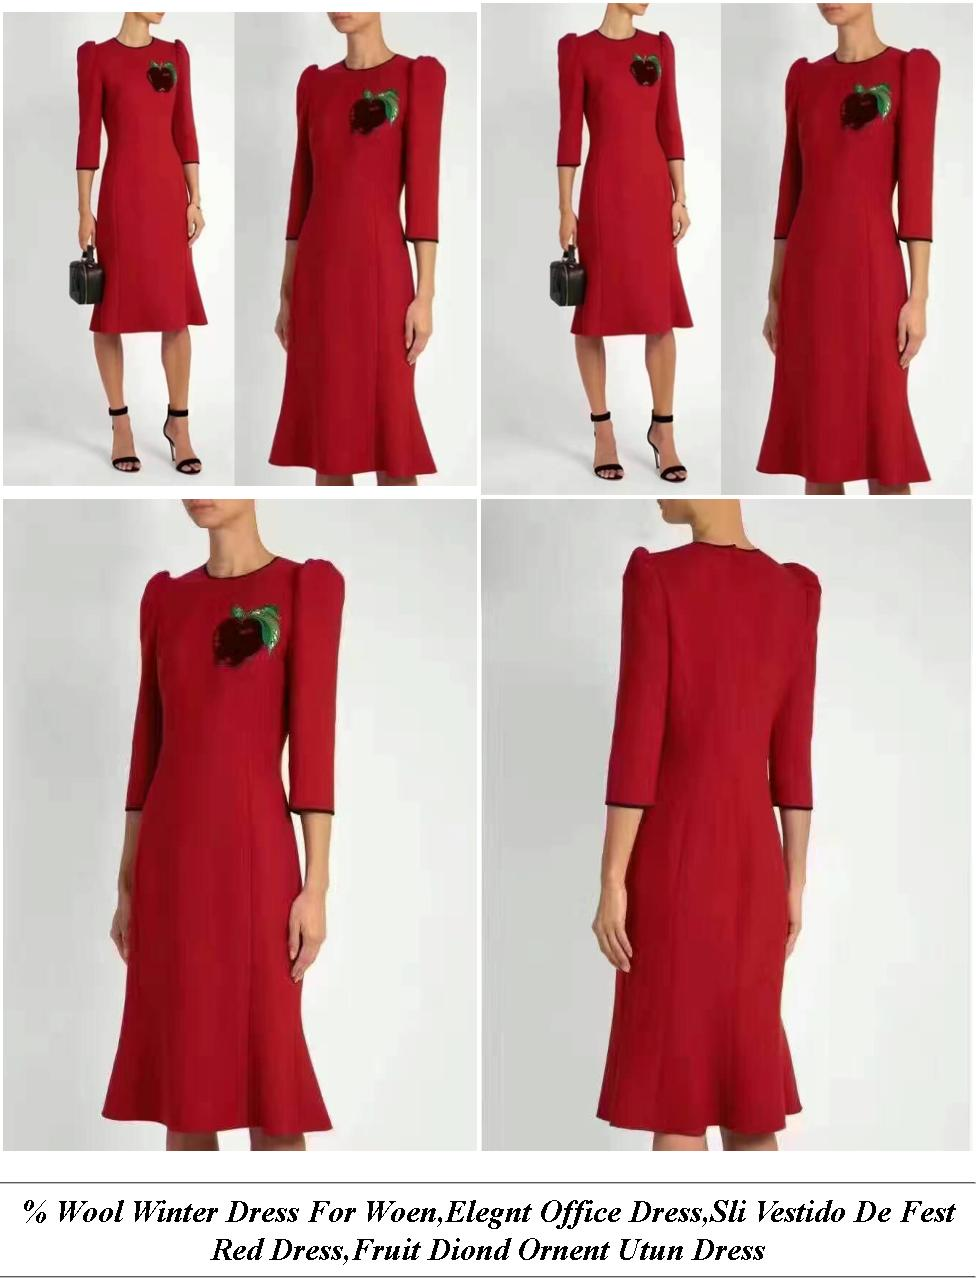 Long Sleeve Dress Sale - S Vintage Online Store - Red Dress Jonas Rothers Gif